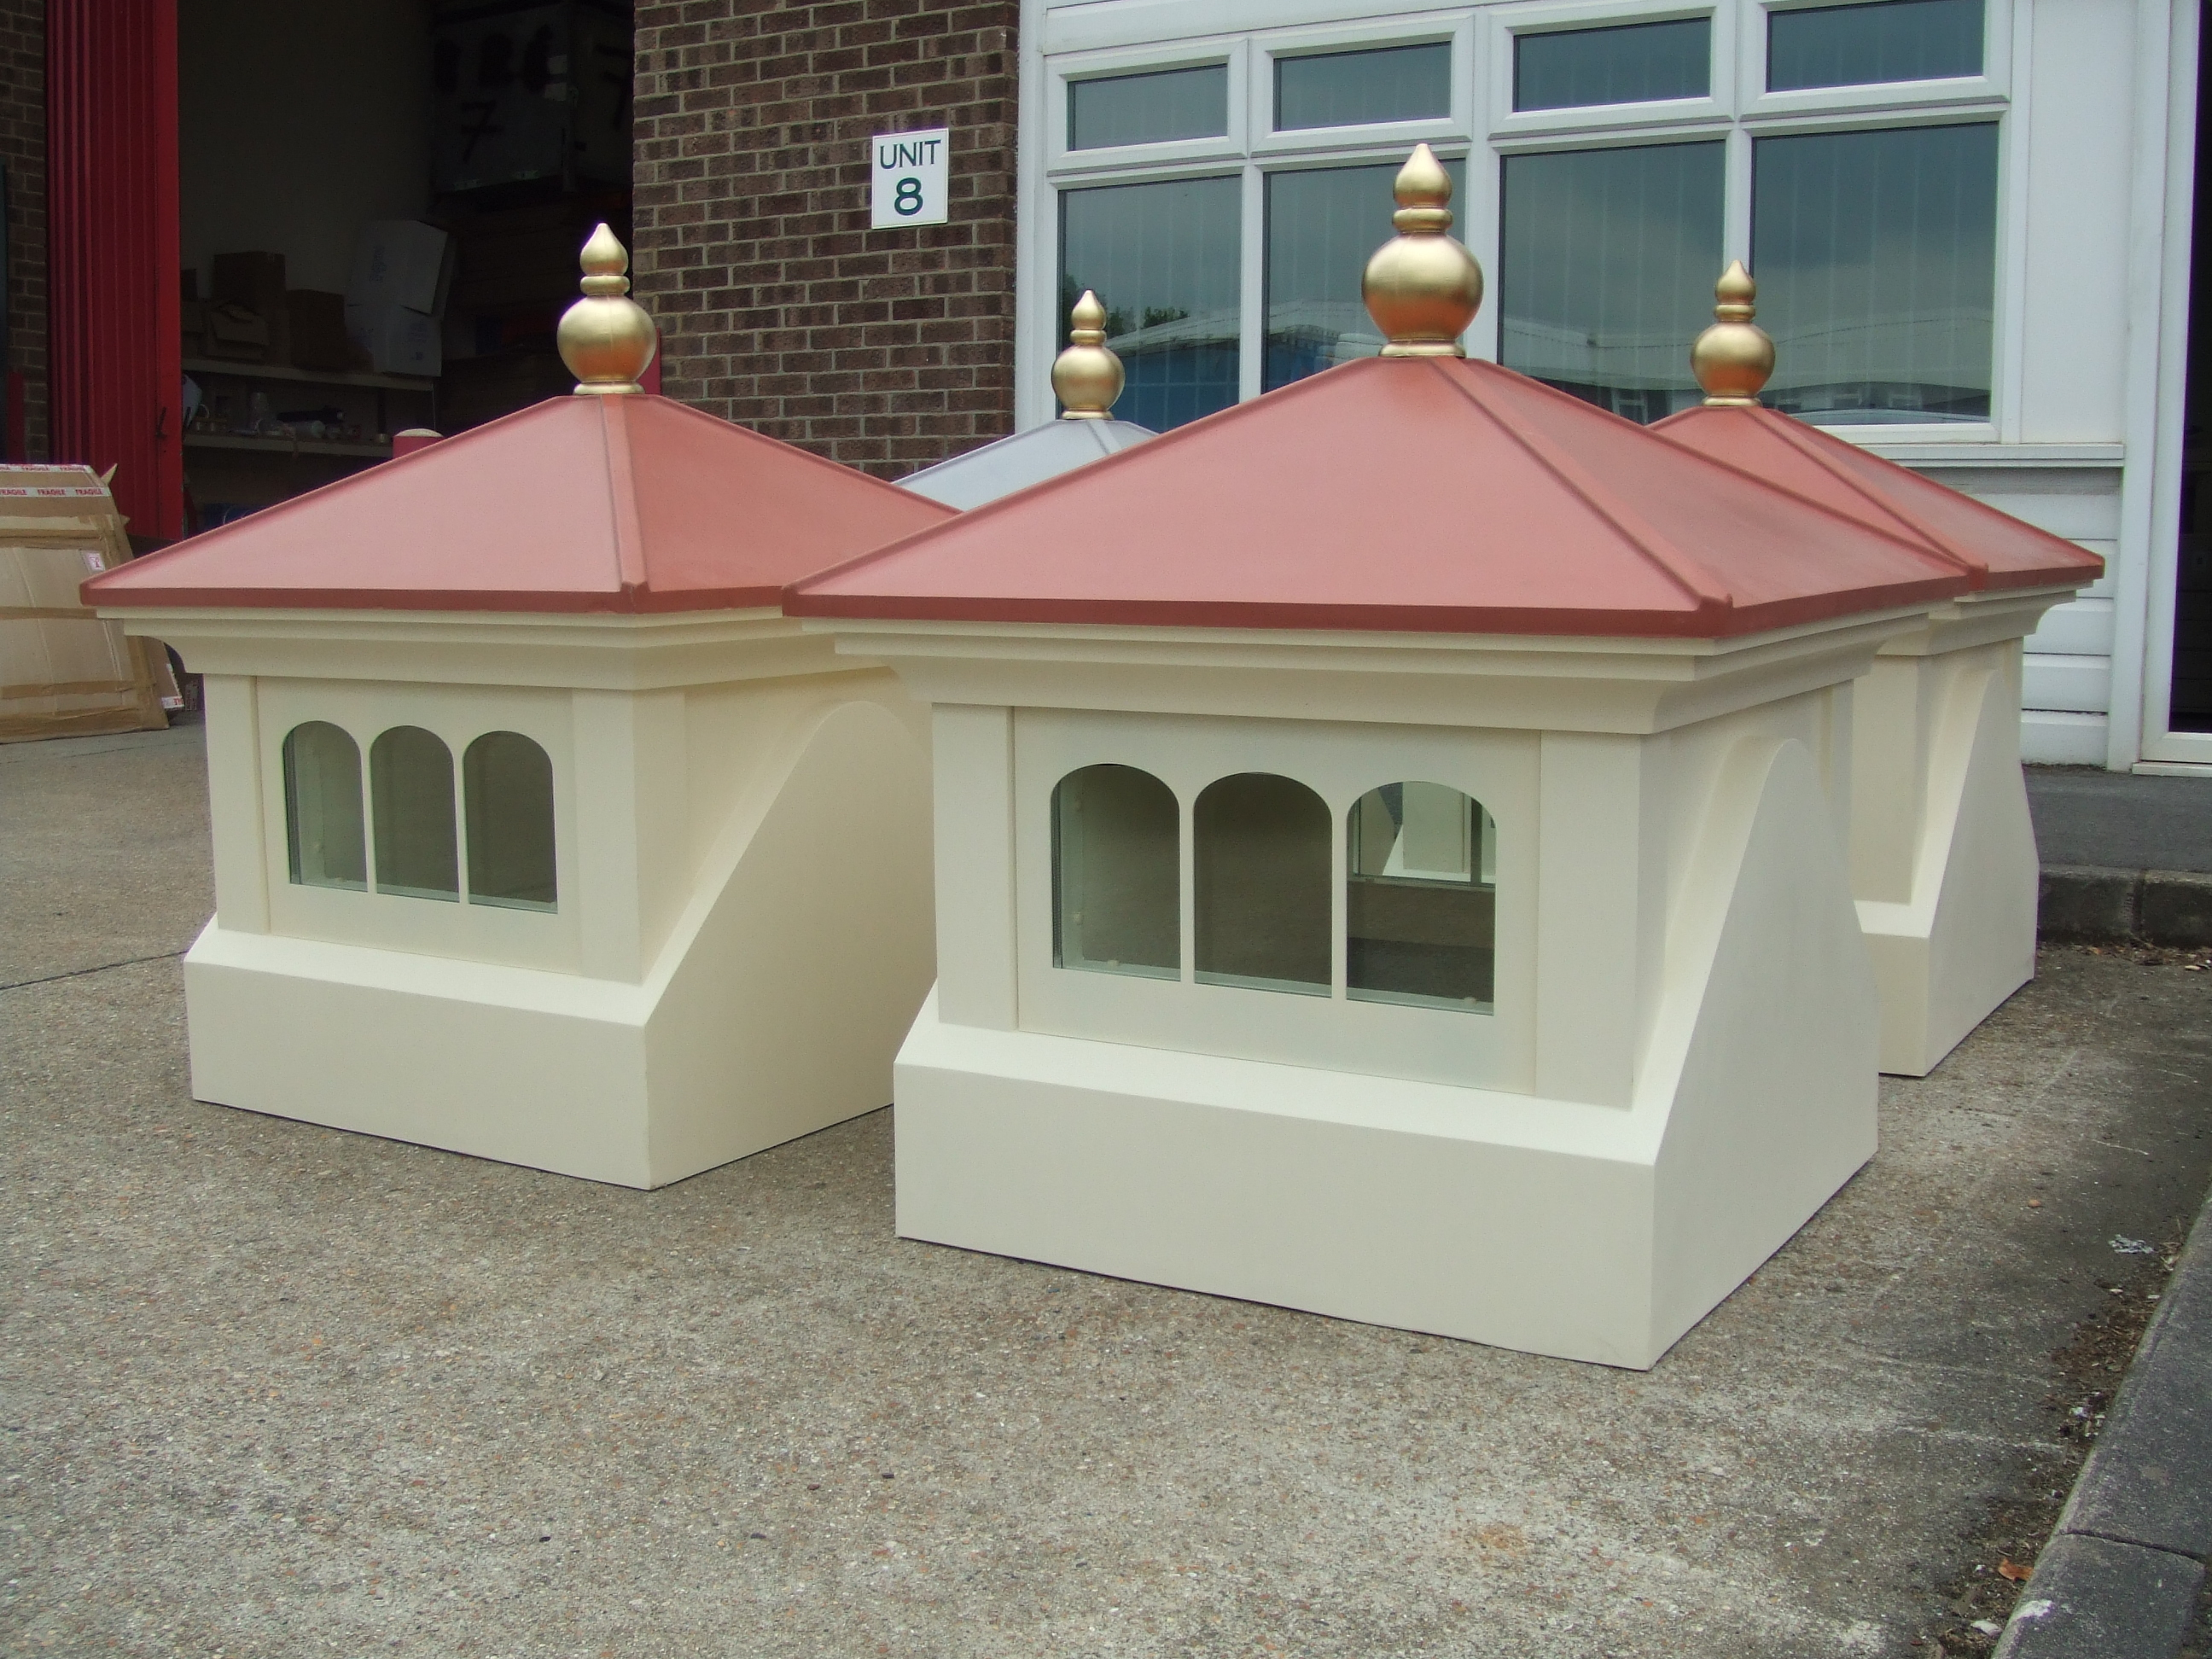 Glazed cupolas with gold finials